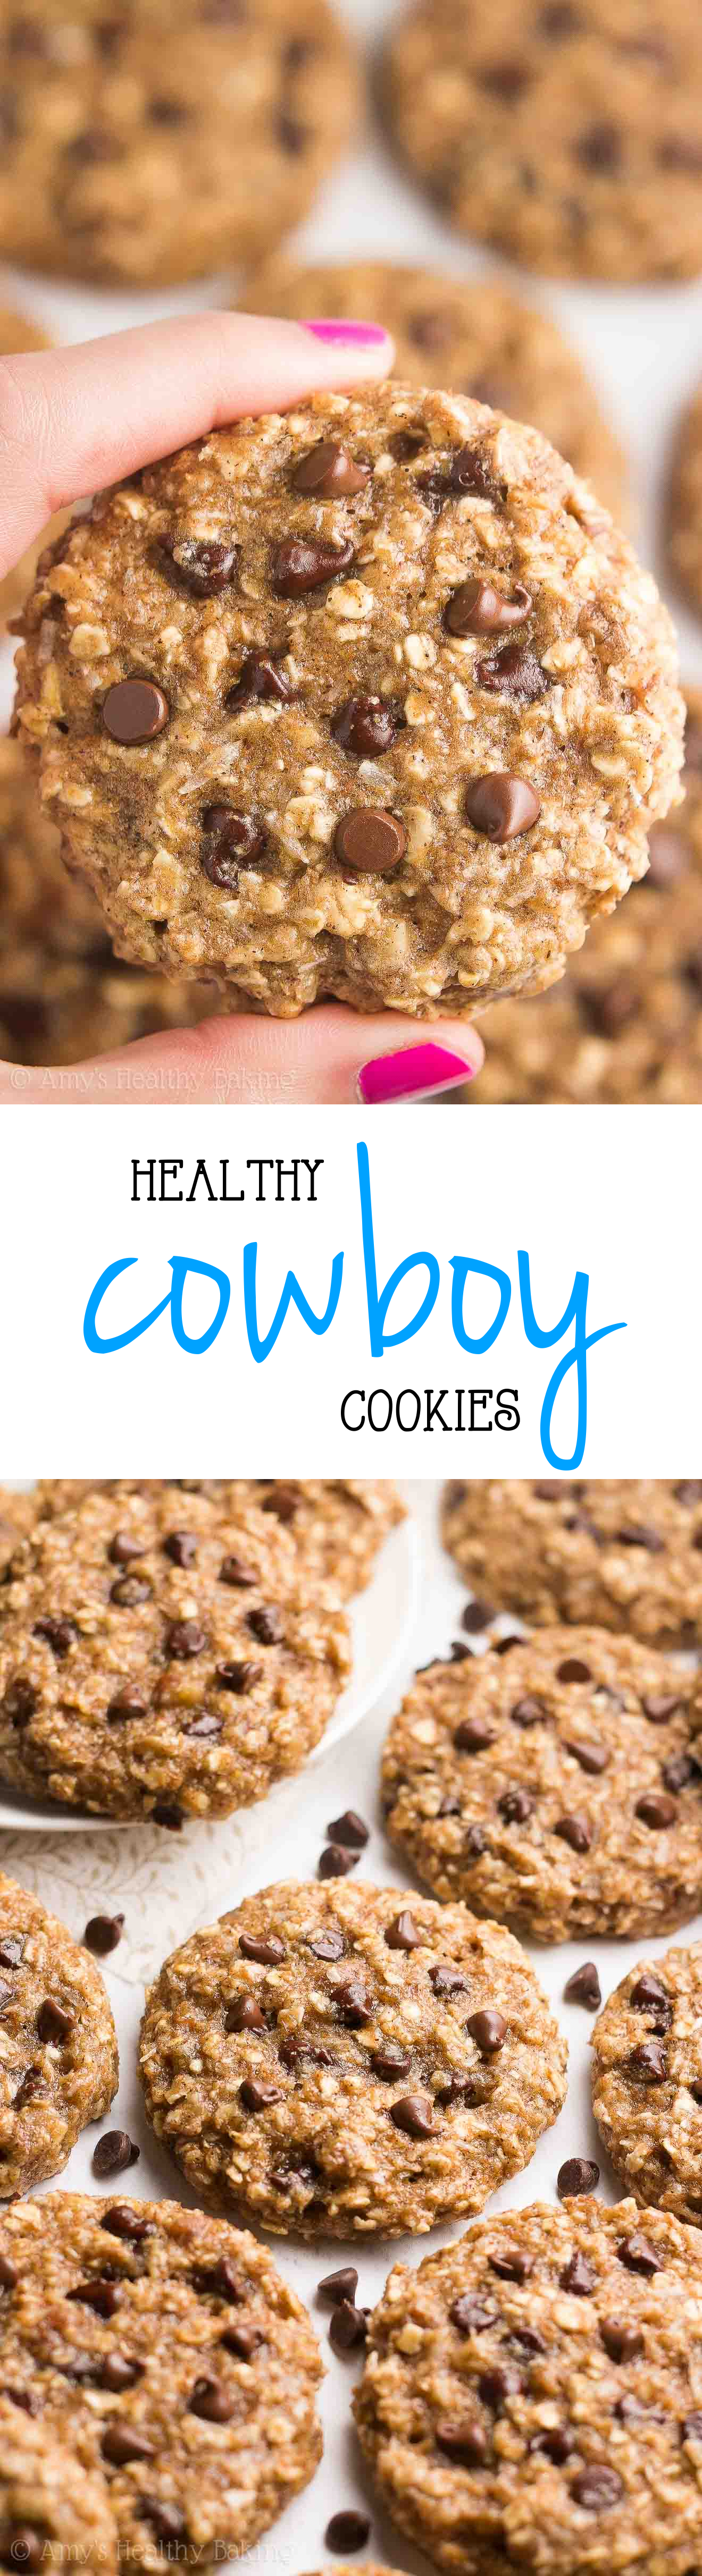 Healthy Classic Cowboy Cookies Amy S Healthy Baking